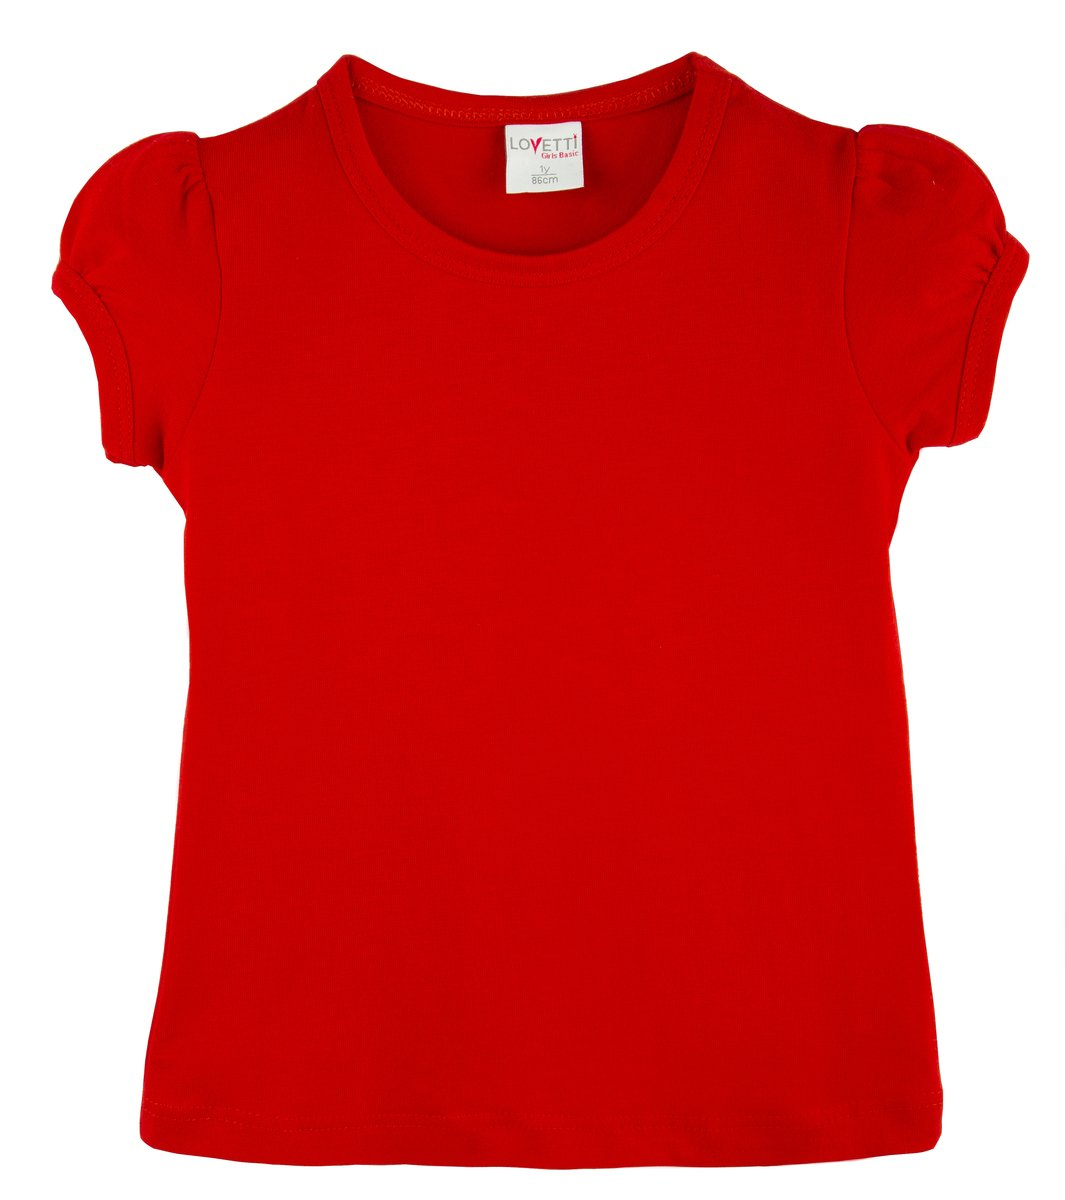 d45edc6ce98 Galleon - Lovetti Girls  Basic Short Puff Sleeve Round Neck T-Shirt 9 Red